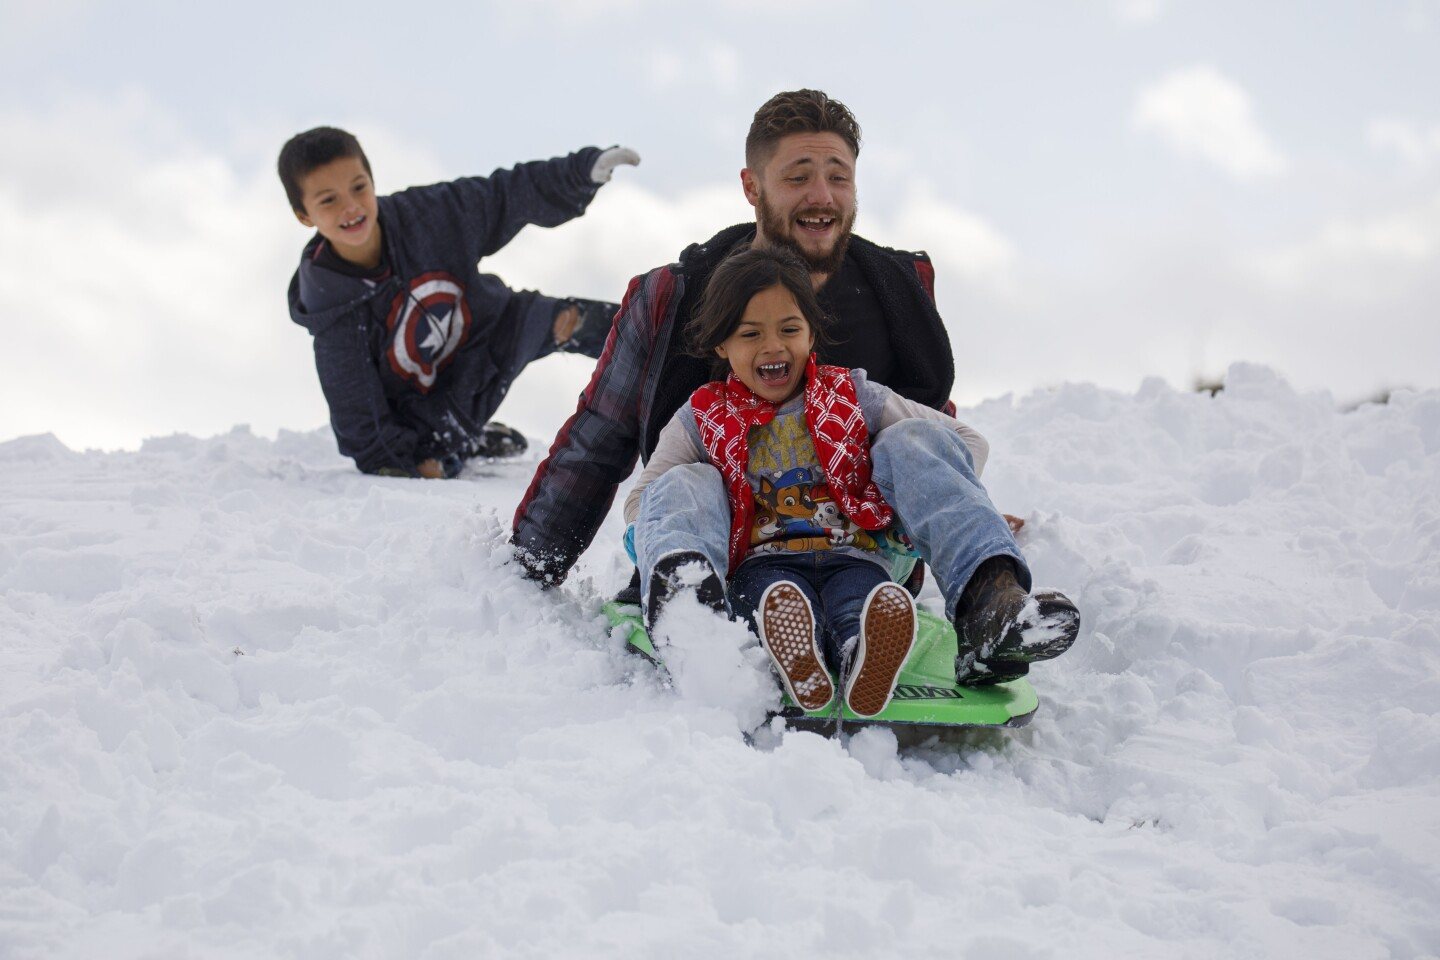 Derek Graham rides a sled with Paige, 6, (in red) and Henry, 7, rear, of Bakersfield as they play in the snow after a winter storm on Friday, November 29, 2019 in Lebec, Calif. The family had planned to go to Mexico but the snow and road closures changed their plans. (Patrick T. Fallon/ For The Los Angeles Times)